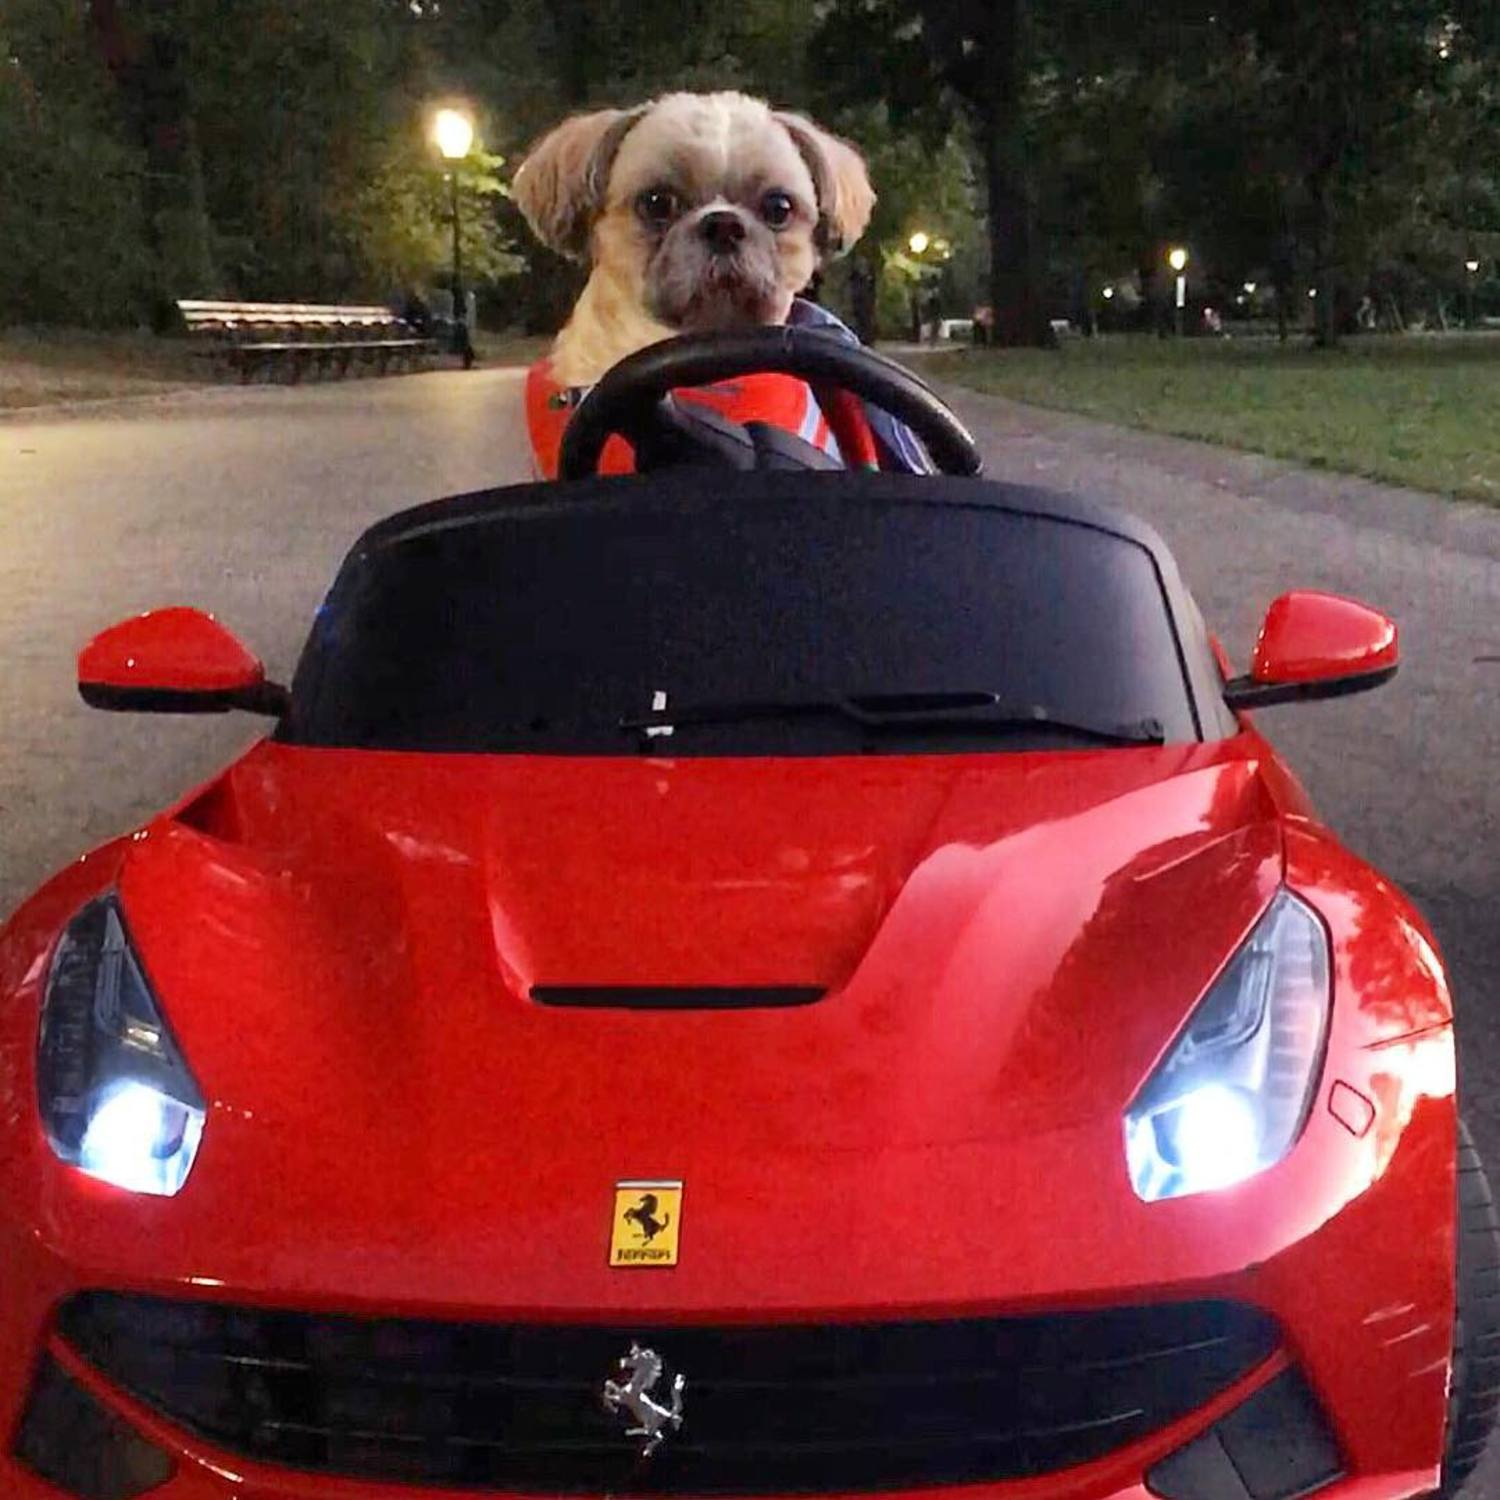 Little Red Riding Hood drives over Sheep Meadow and through the Great Lawn to Grandmother's garage....and thinks maybe @ferrariusa ran over the big bad wolf 👀 #fairytail #littleredridinghood #dogs #afterdark #shihtzu #petstagram #dogsdrivingcars